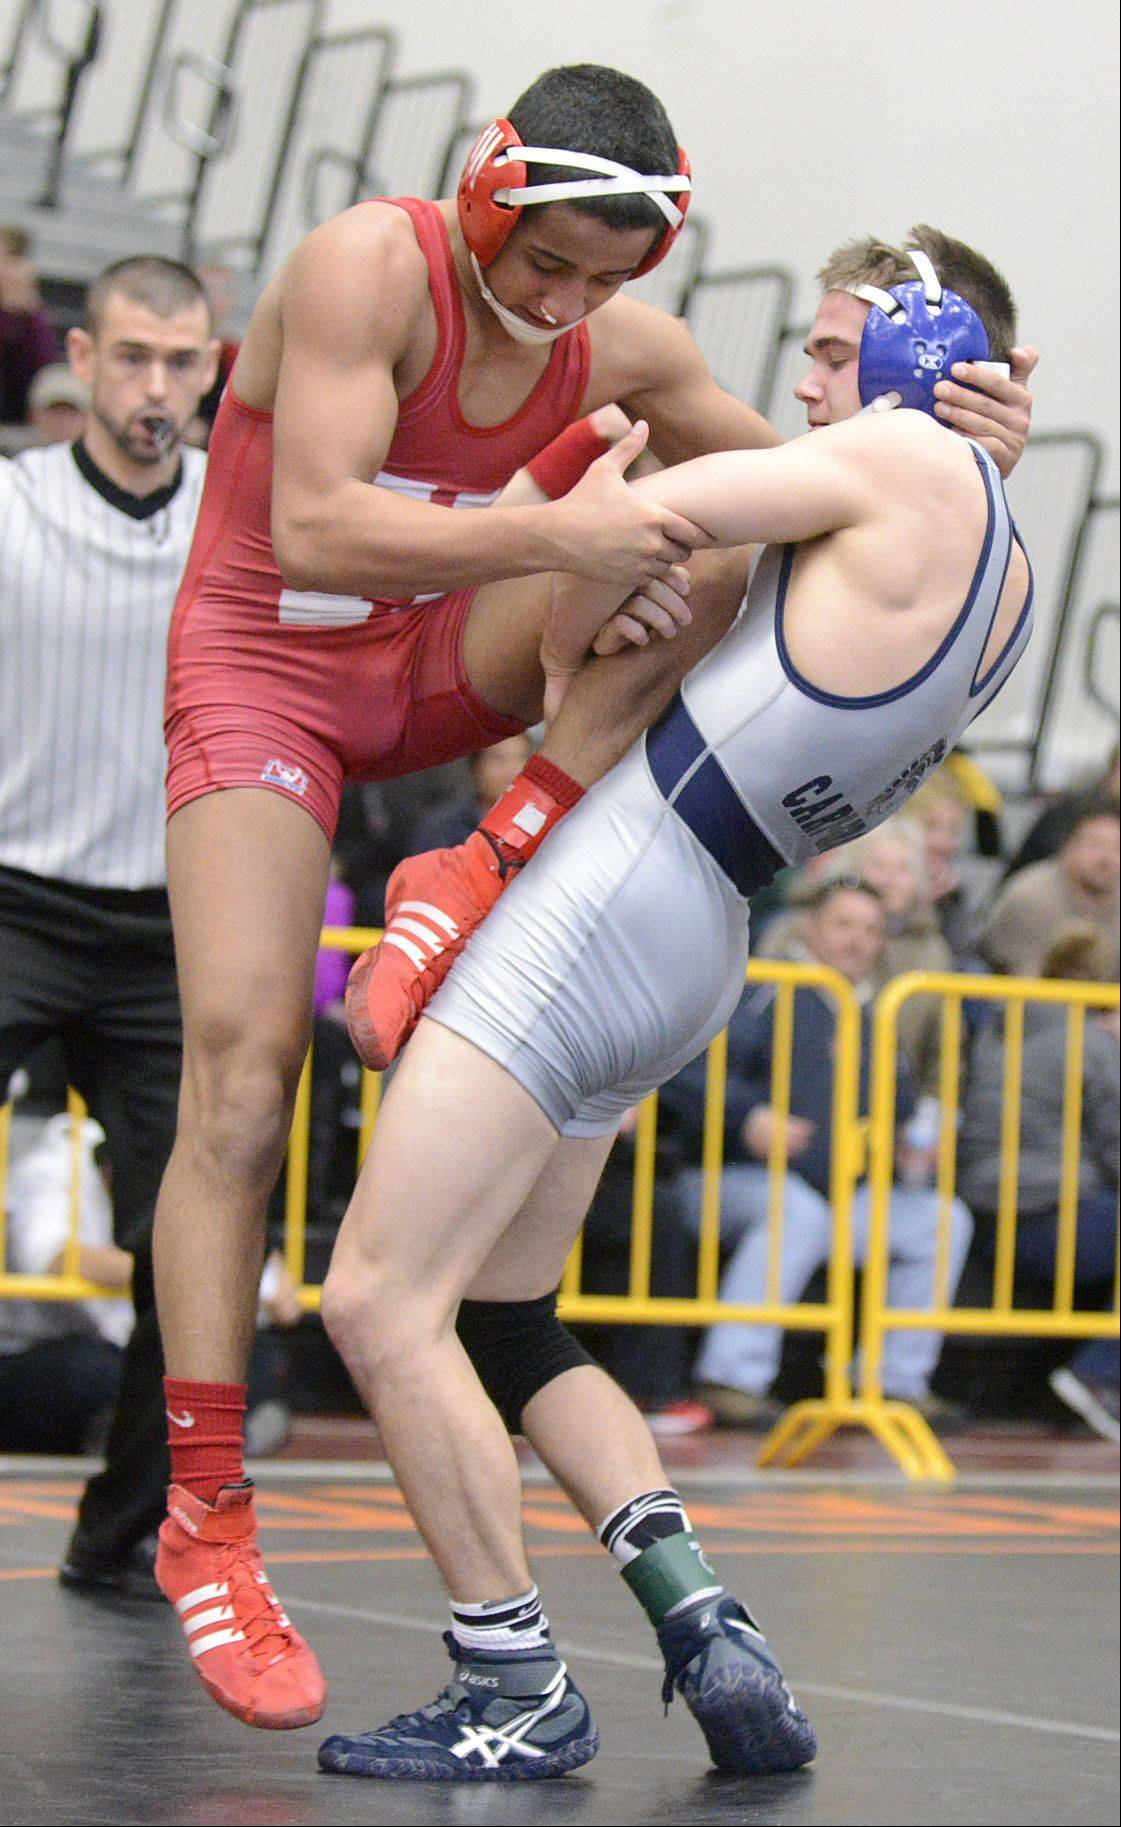 Cary-Grove's Logan Hanselmann takes down Huntley's Ricky Vigil for the win in the 126-pound championship at the Fox Valley Conference meet in McHenry on Saturday.